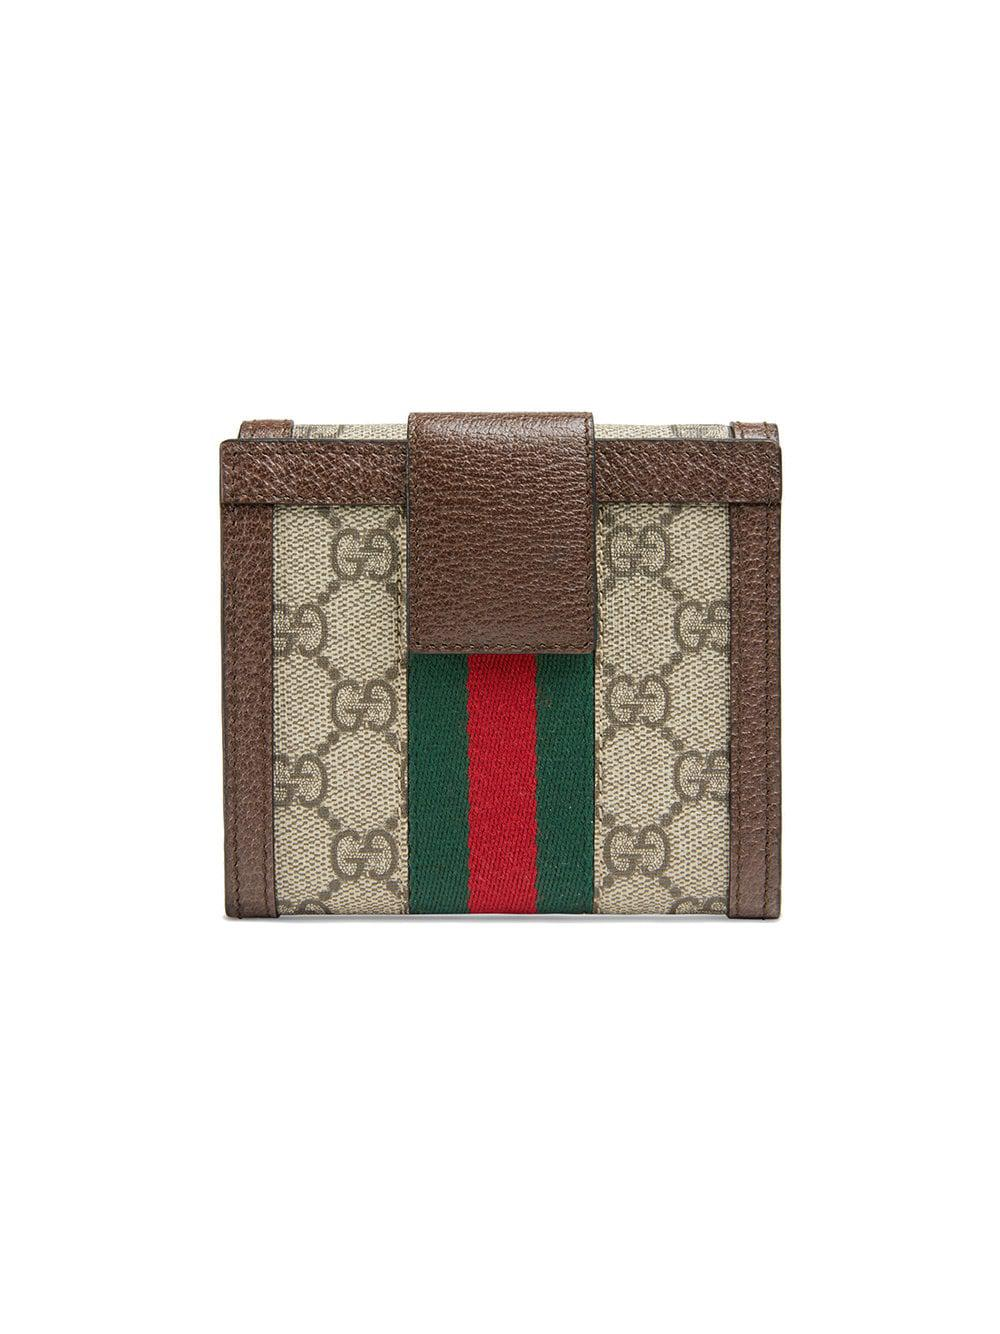 201dfad62b43 Lyst - Gucci Ophidia GG French Flap Wallet in Brown